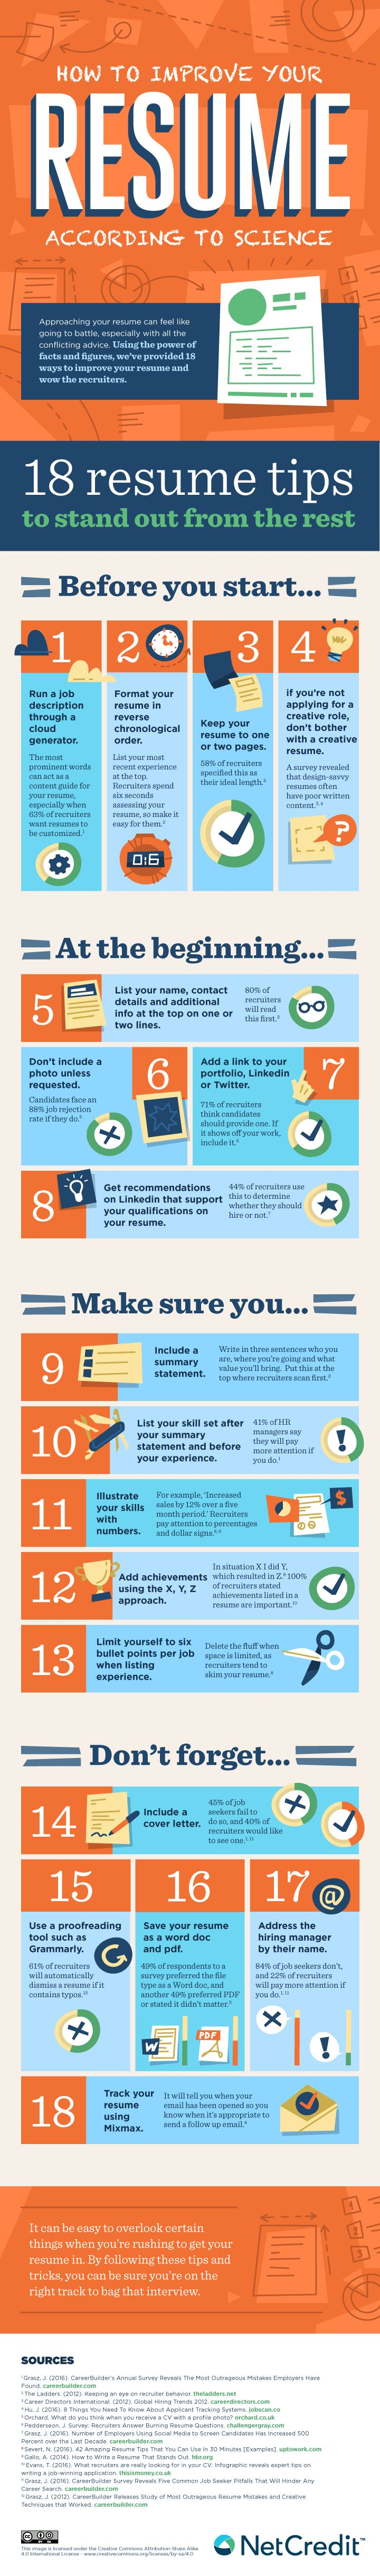 Famous 10 Tips To Write A Good Resume Big 100 Free Resume Builder Regular 100 Free Resume Templates 2 Page Resume Design Young 2014 Calendar Template Pdf Brown2014 Excel Calendar Template 25  Best Ideas About Good Resume On Pinterest | Create A Cv ..